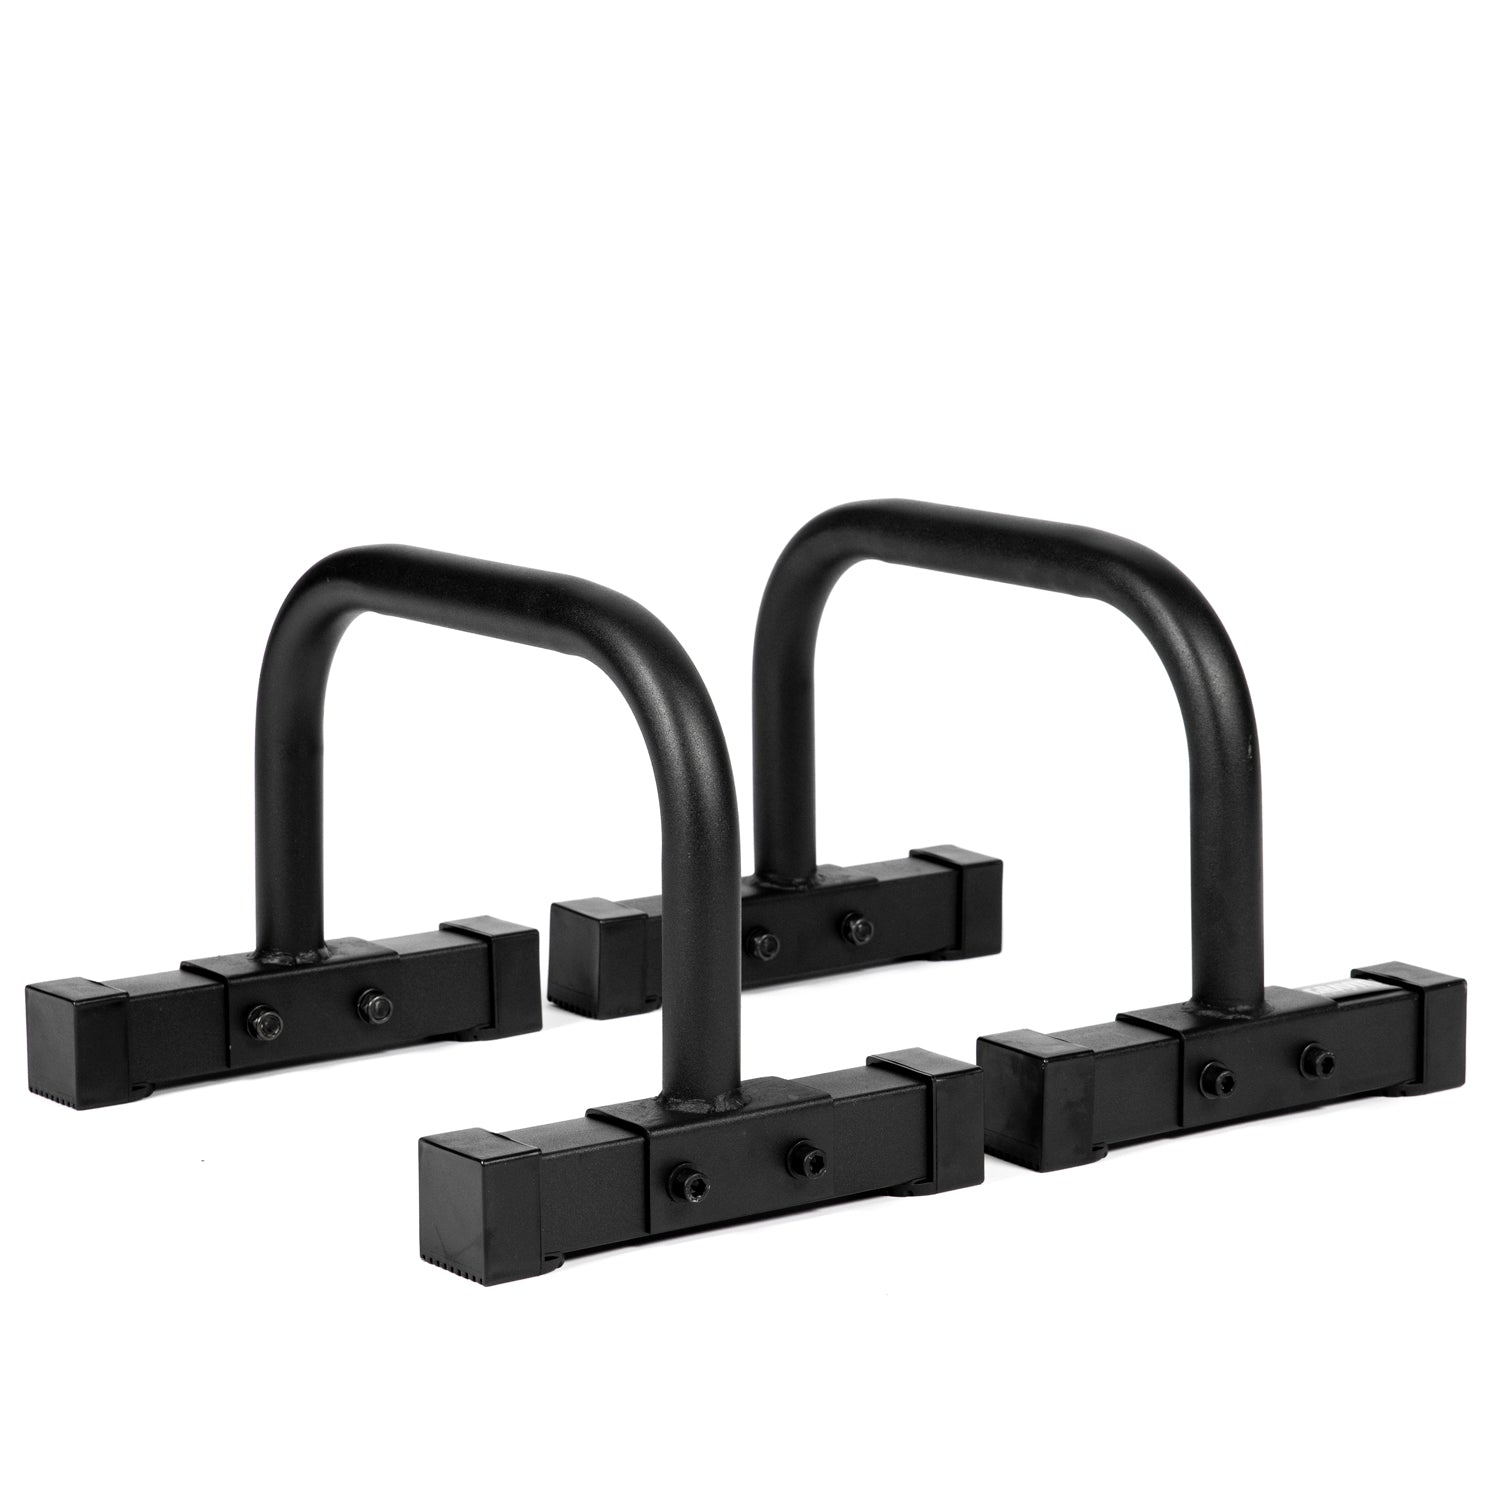 Gravity Fitness Medium Pro Parallettes 3.0